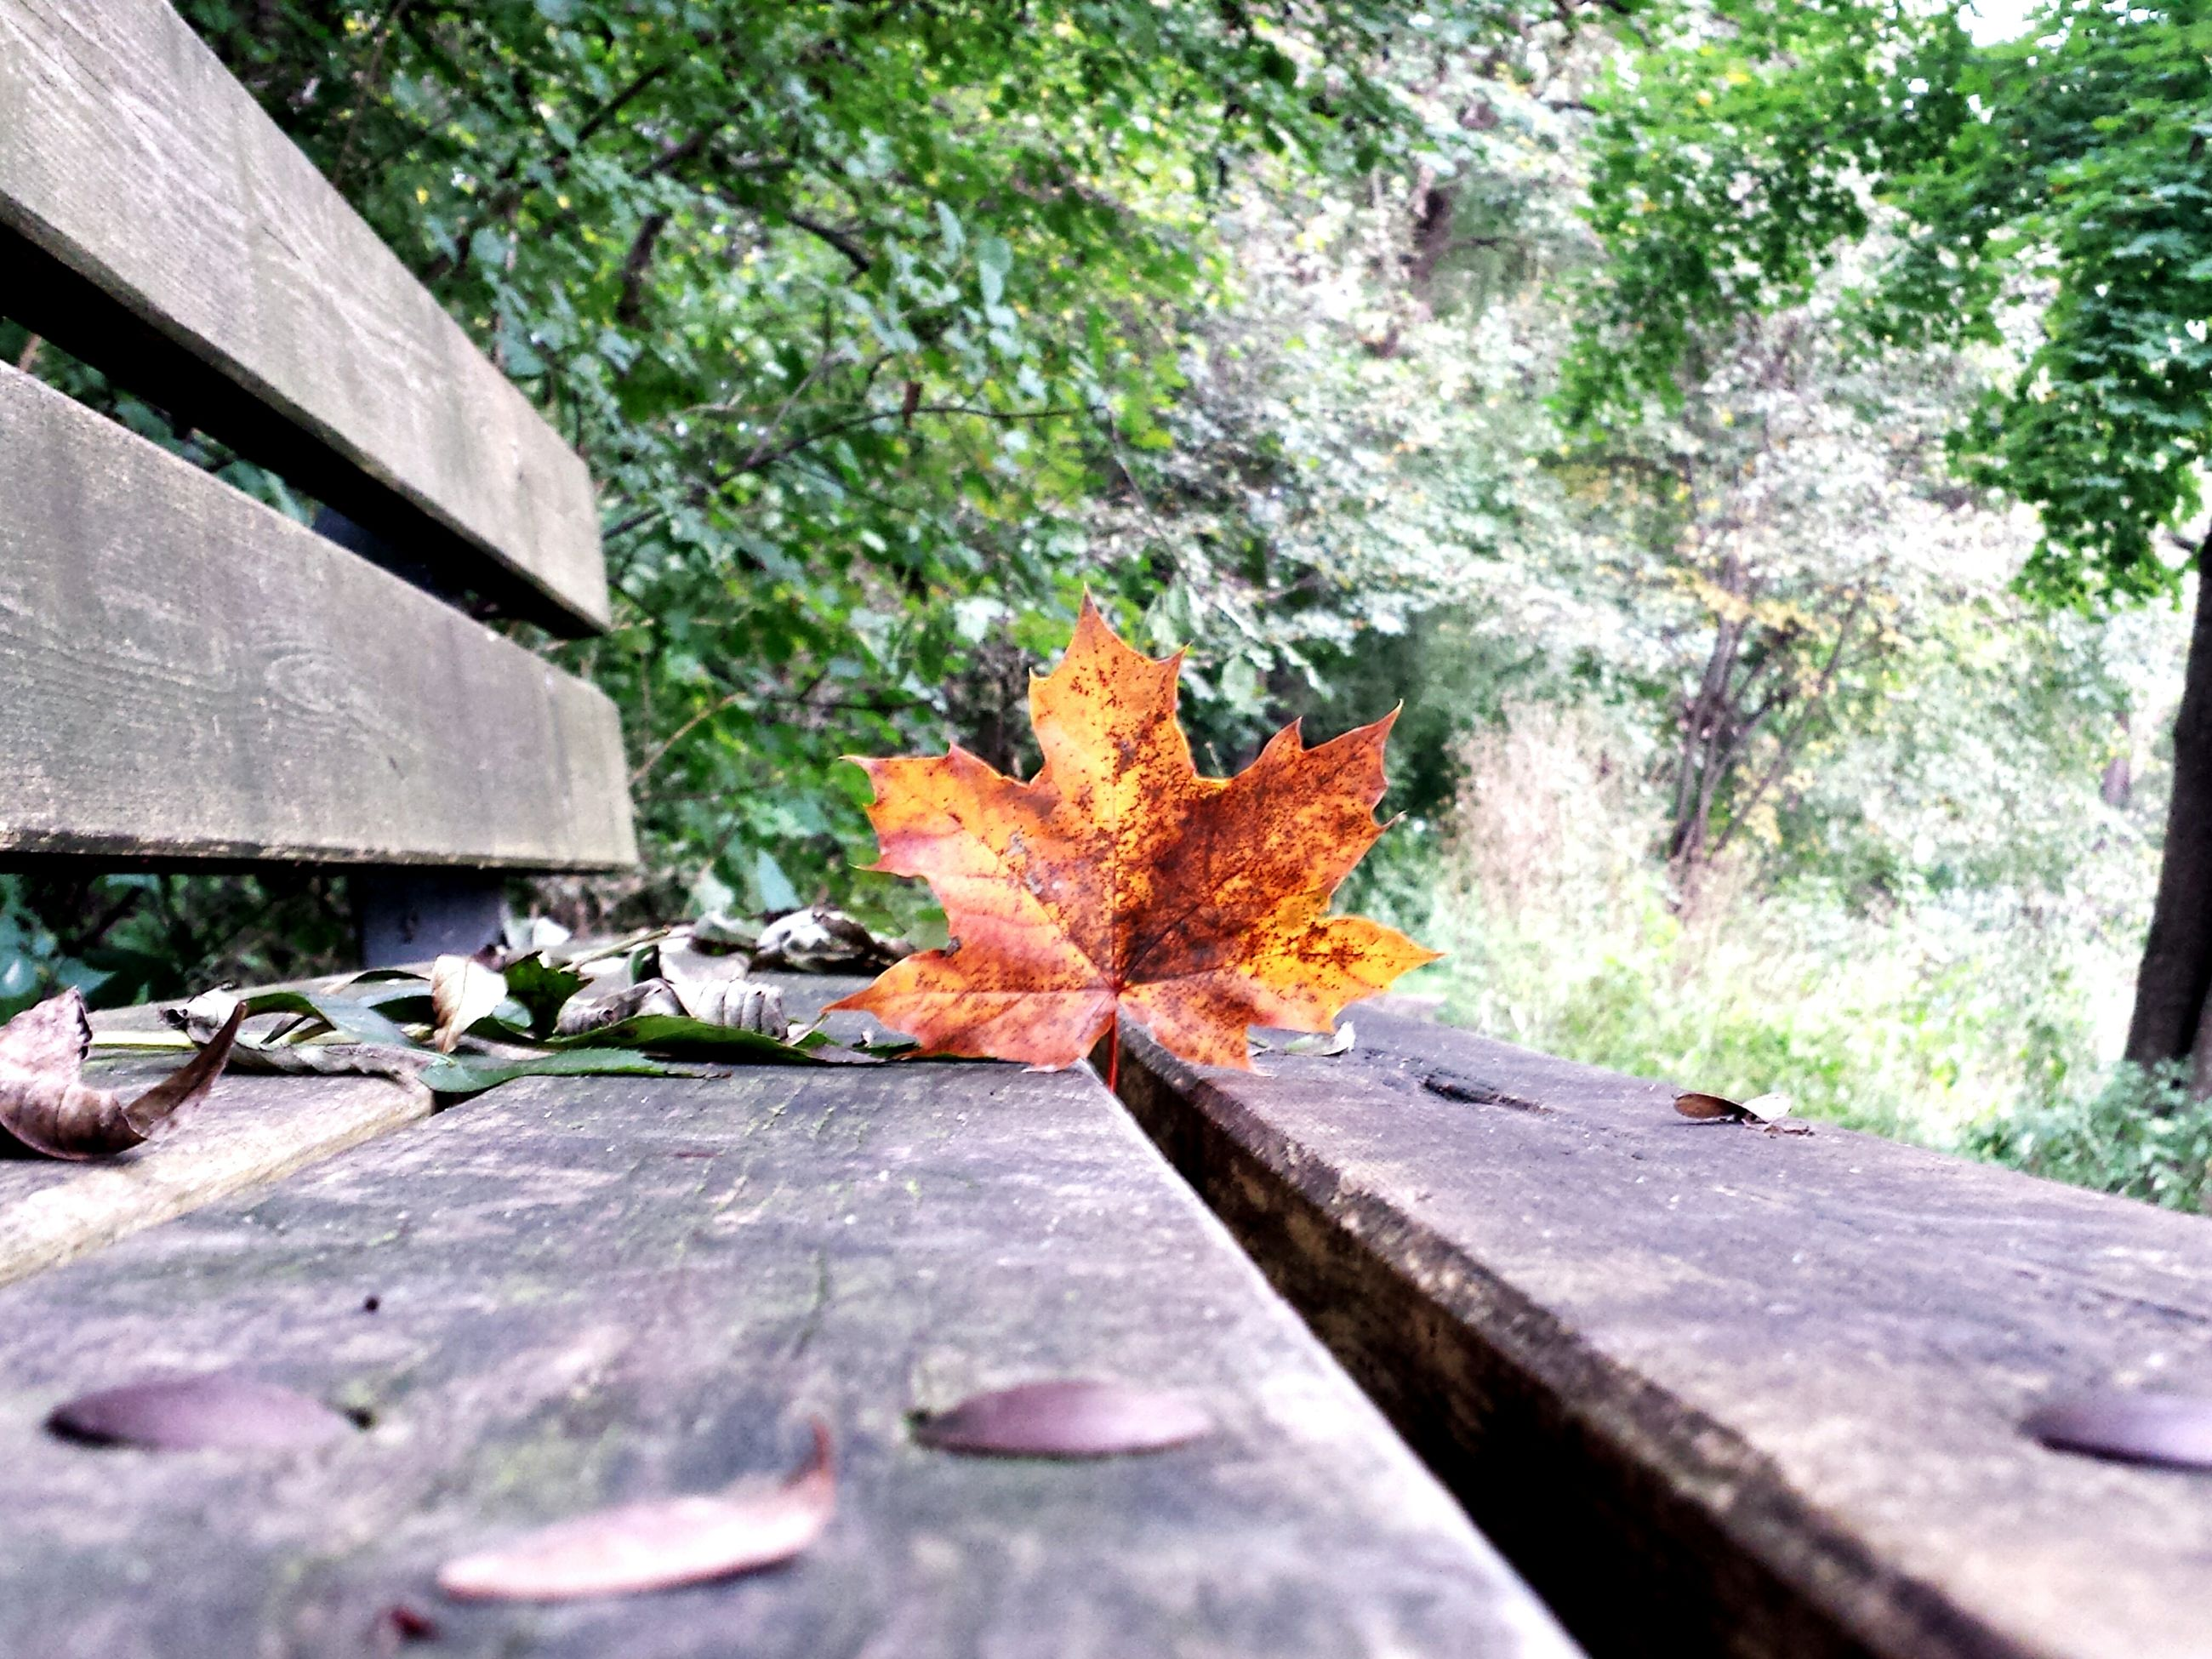 autumn, change, season, orange color, leaf, tree, maple leaf, close-up, nature, tranquility, day, outdoors, growing, beauty in nature, tranquil scene, green, no people, scenics